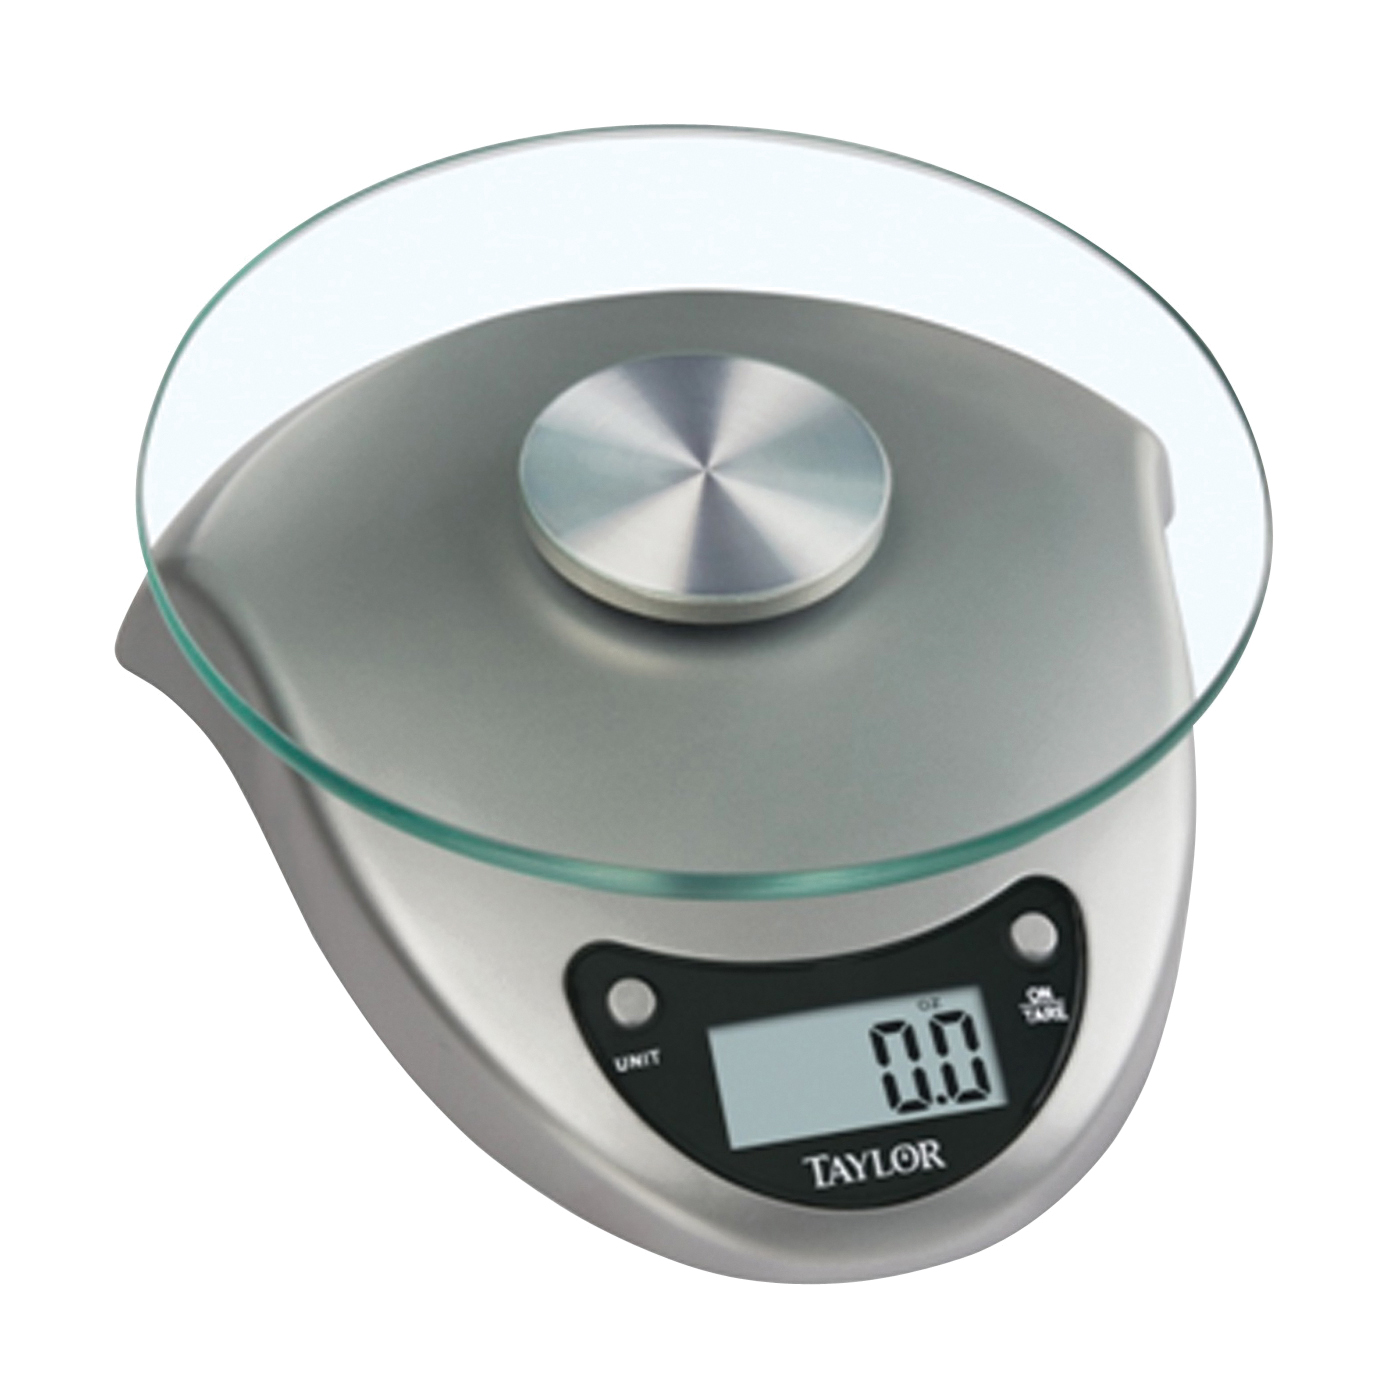 Picture of Taylor 3831S Kitchen Scale, 6.6 lb Capacity, LCD Display, Tempered Glass Platform, Silver, g, kg, lb, oz